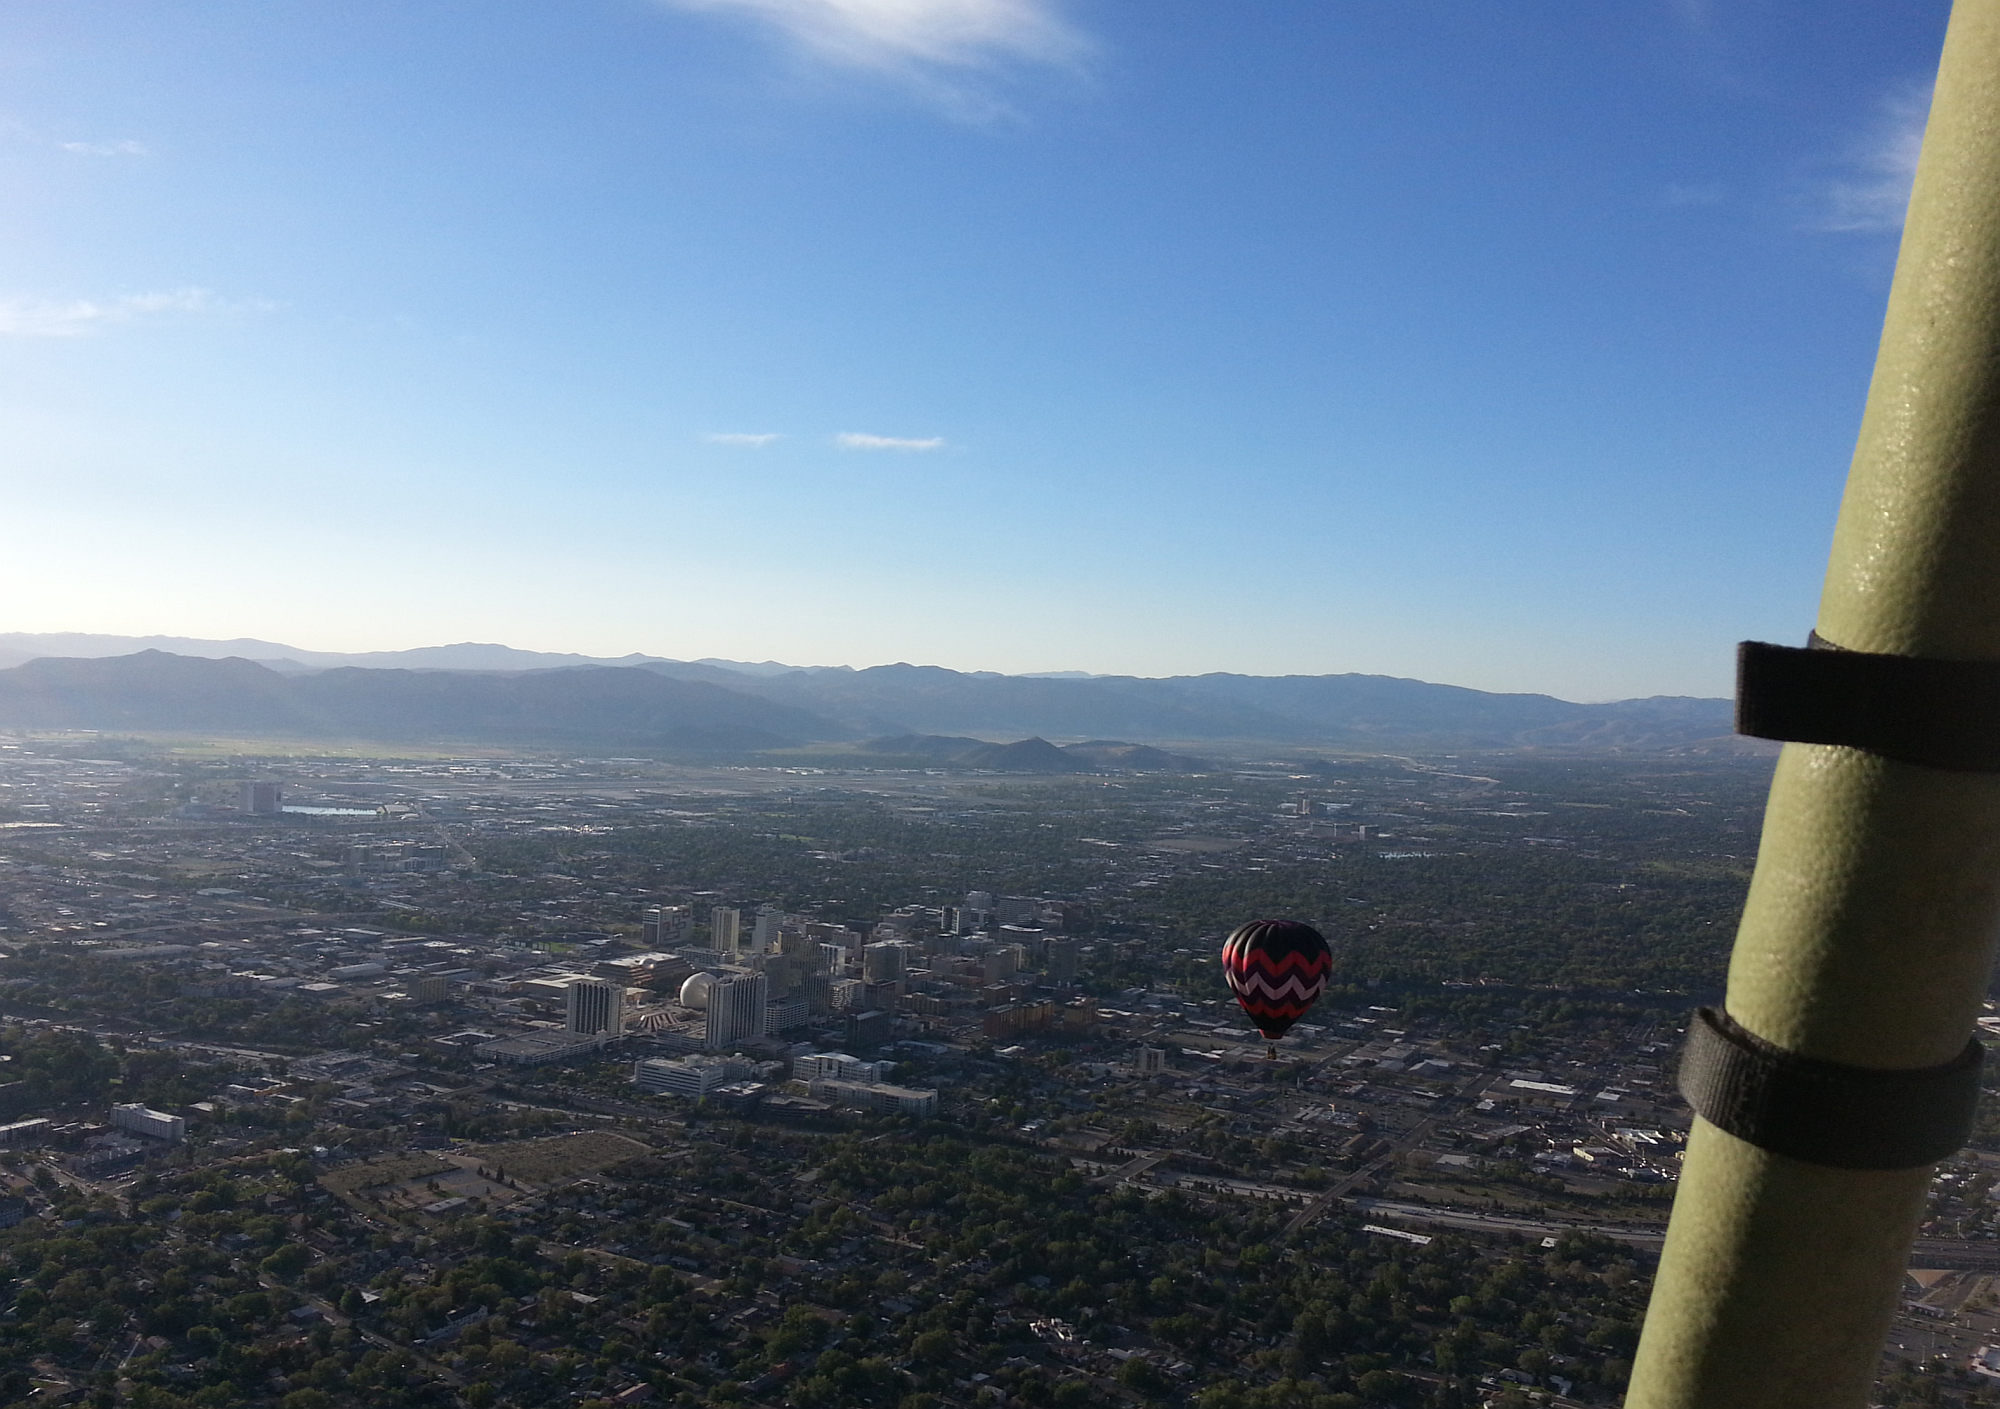 Downtown Reno Nevada from the basket of our Cheers Balloon, with Mariposa II Balloon nearby.